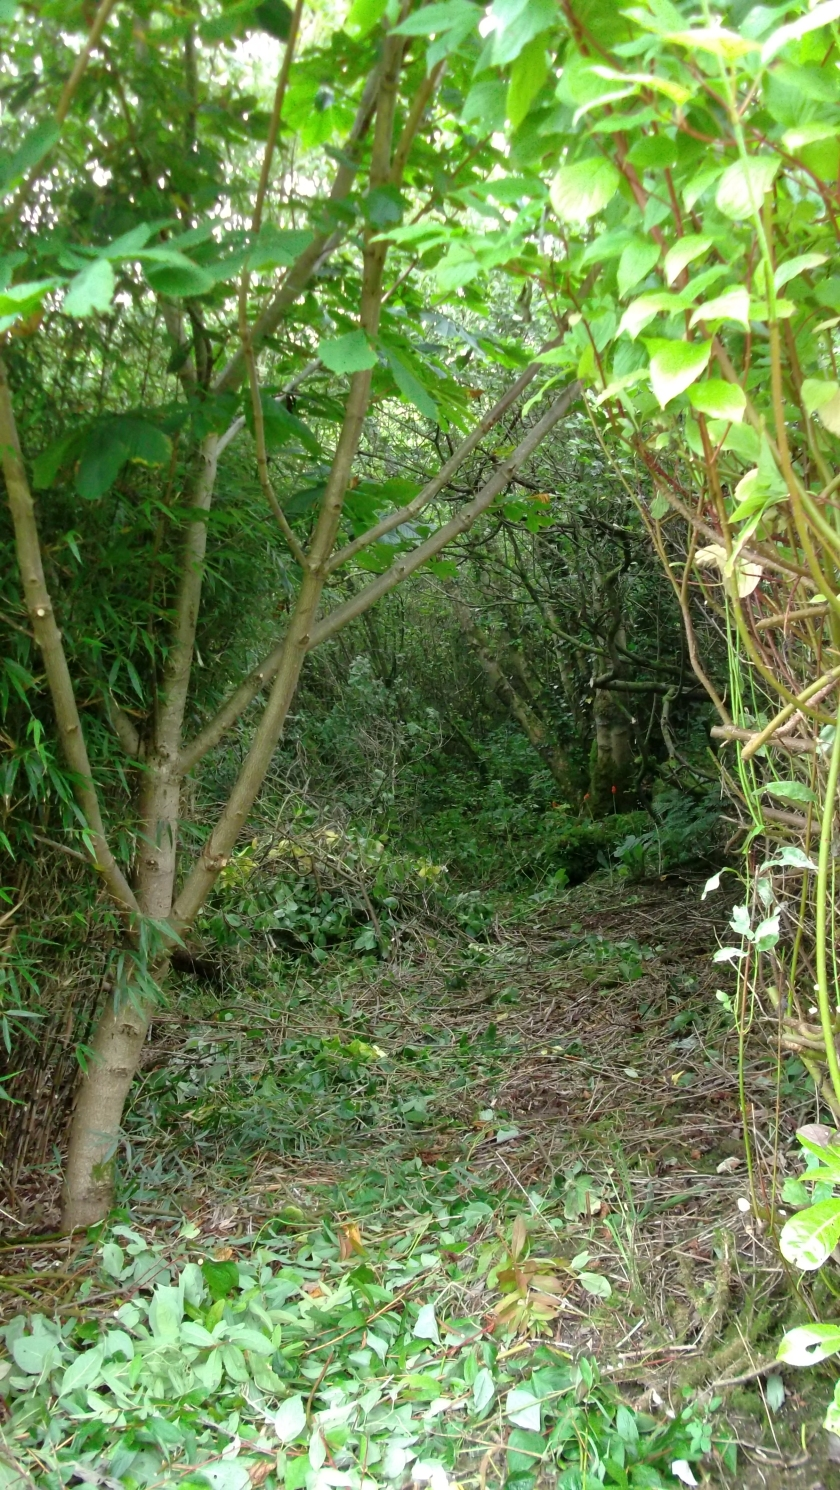 Permaculture Gardens at bealtainecottage.com 002